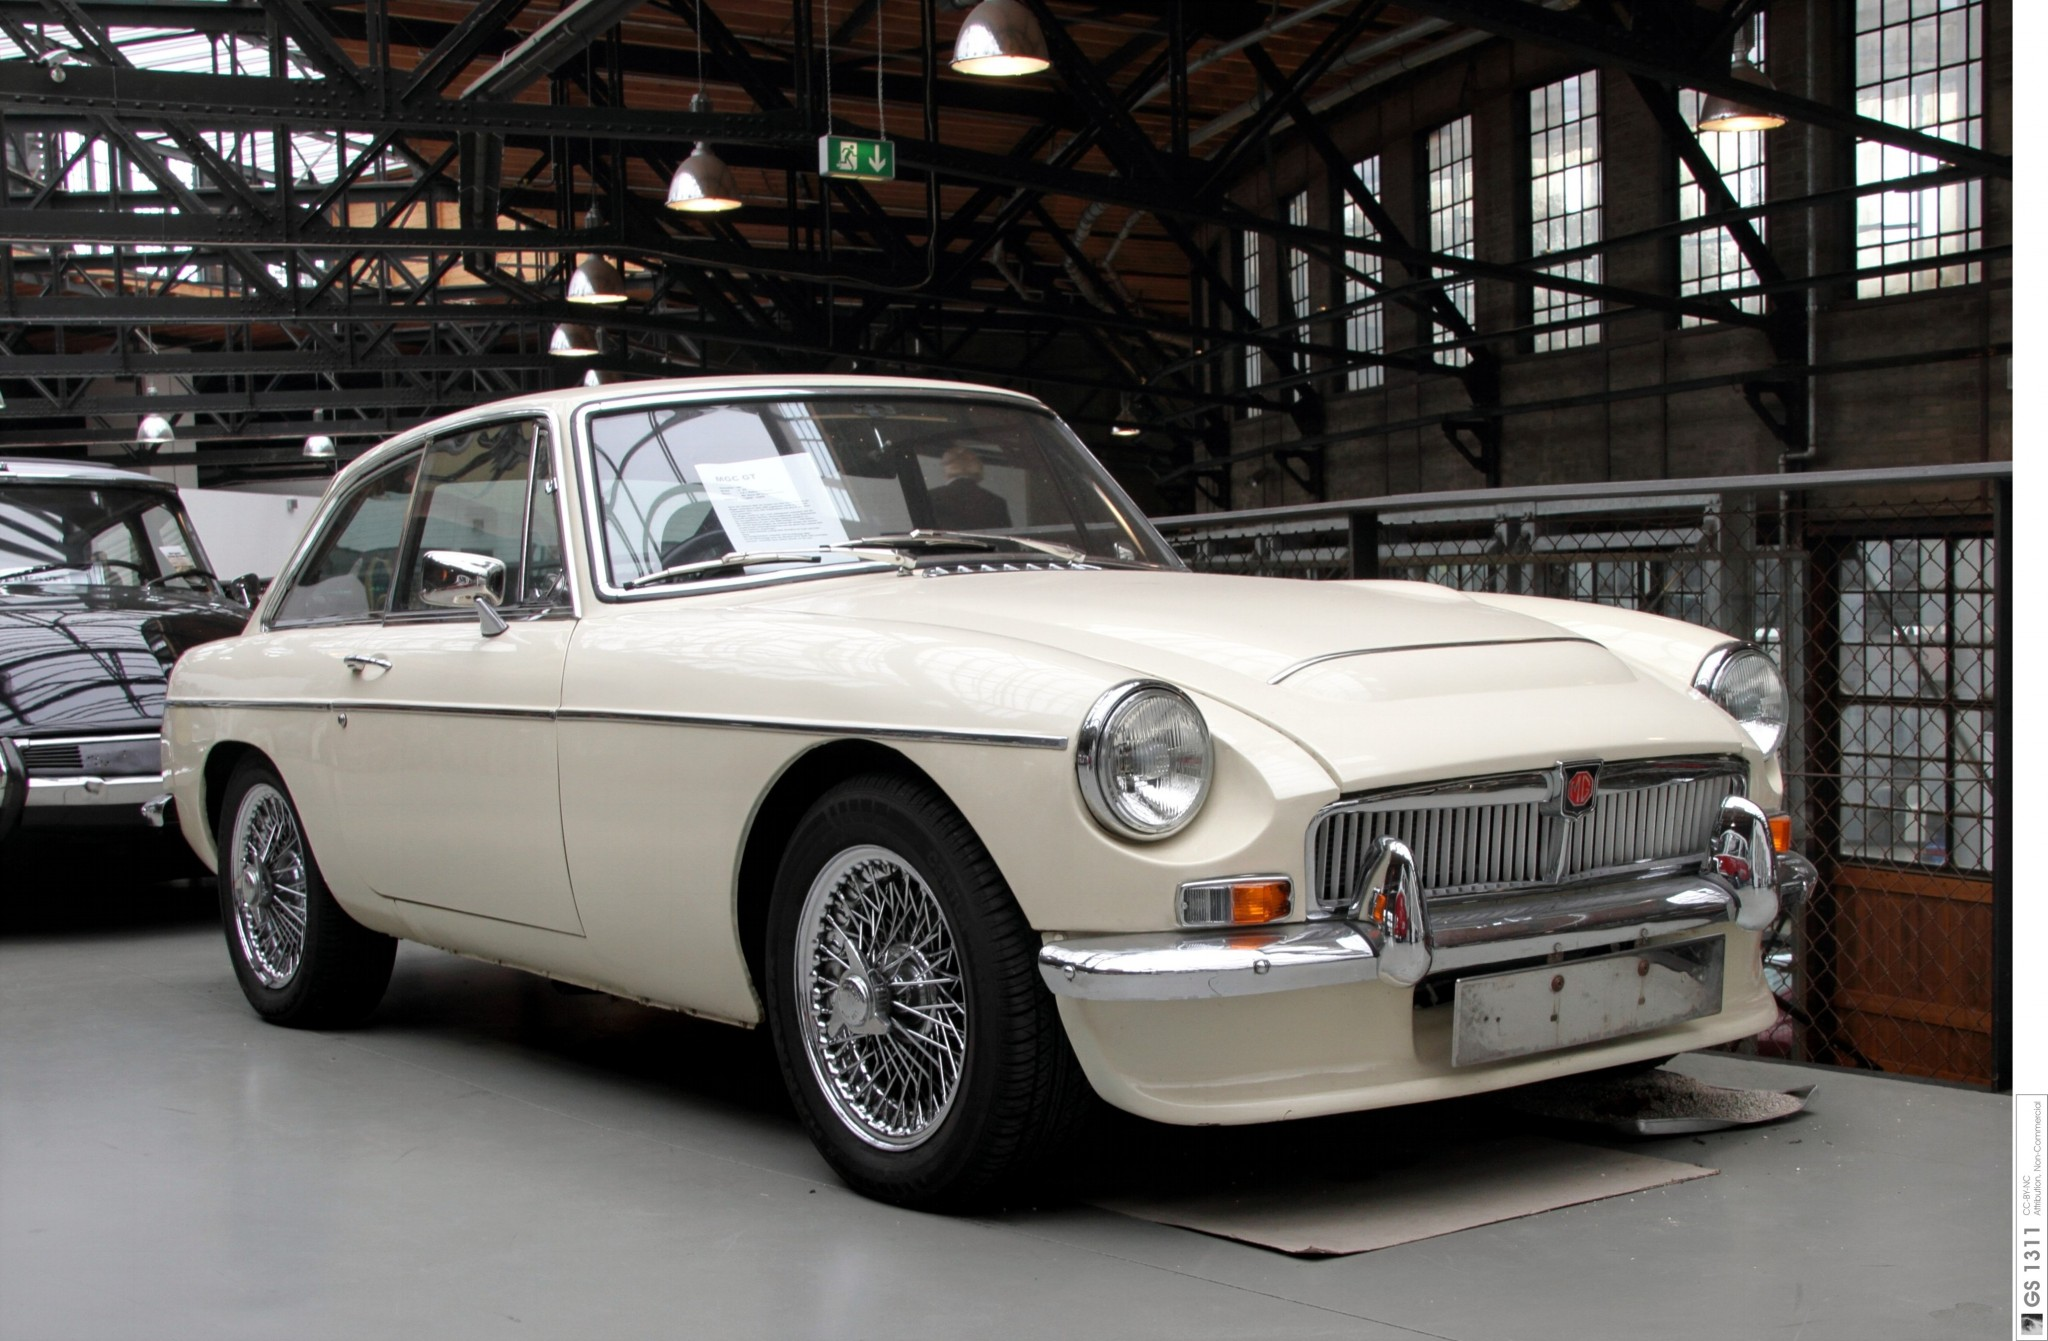 MGB - http://www.sportscarshop.com/mgb-with-hardtop/